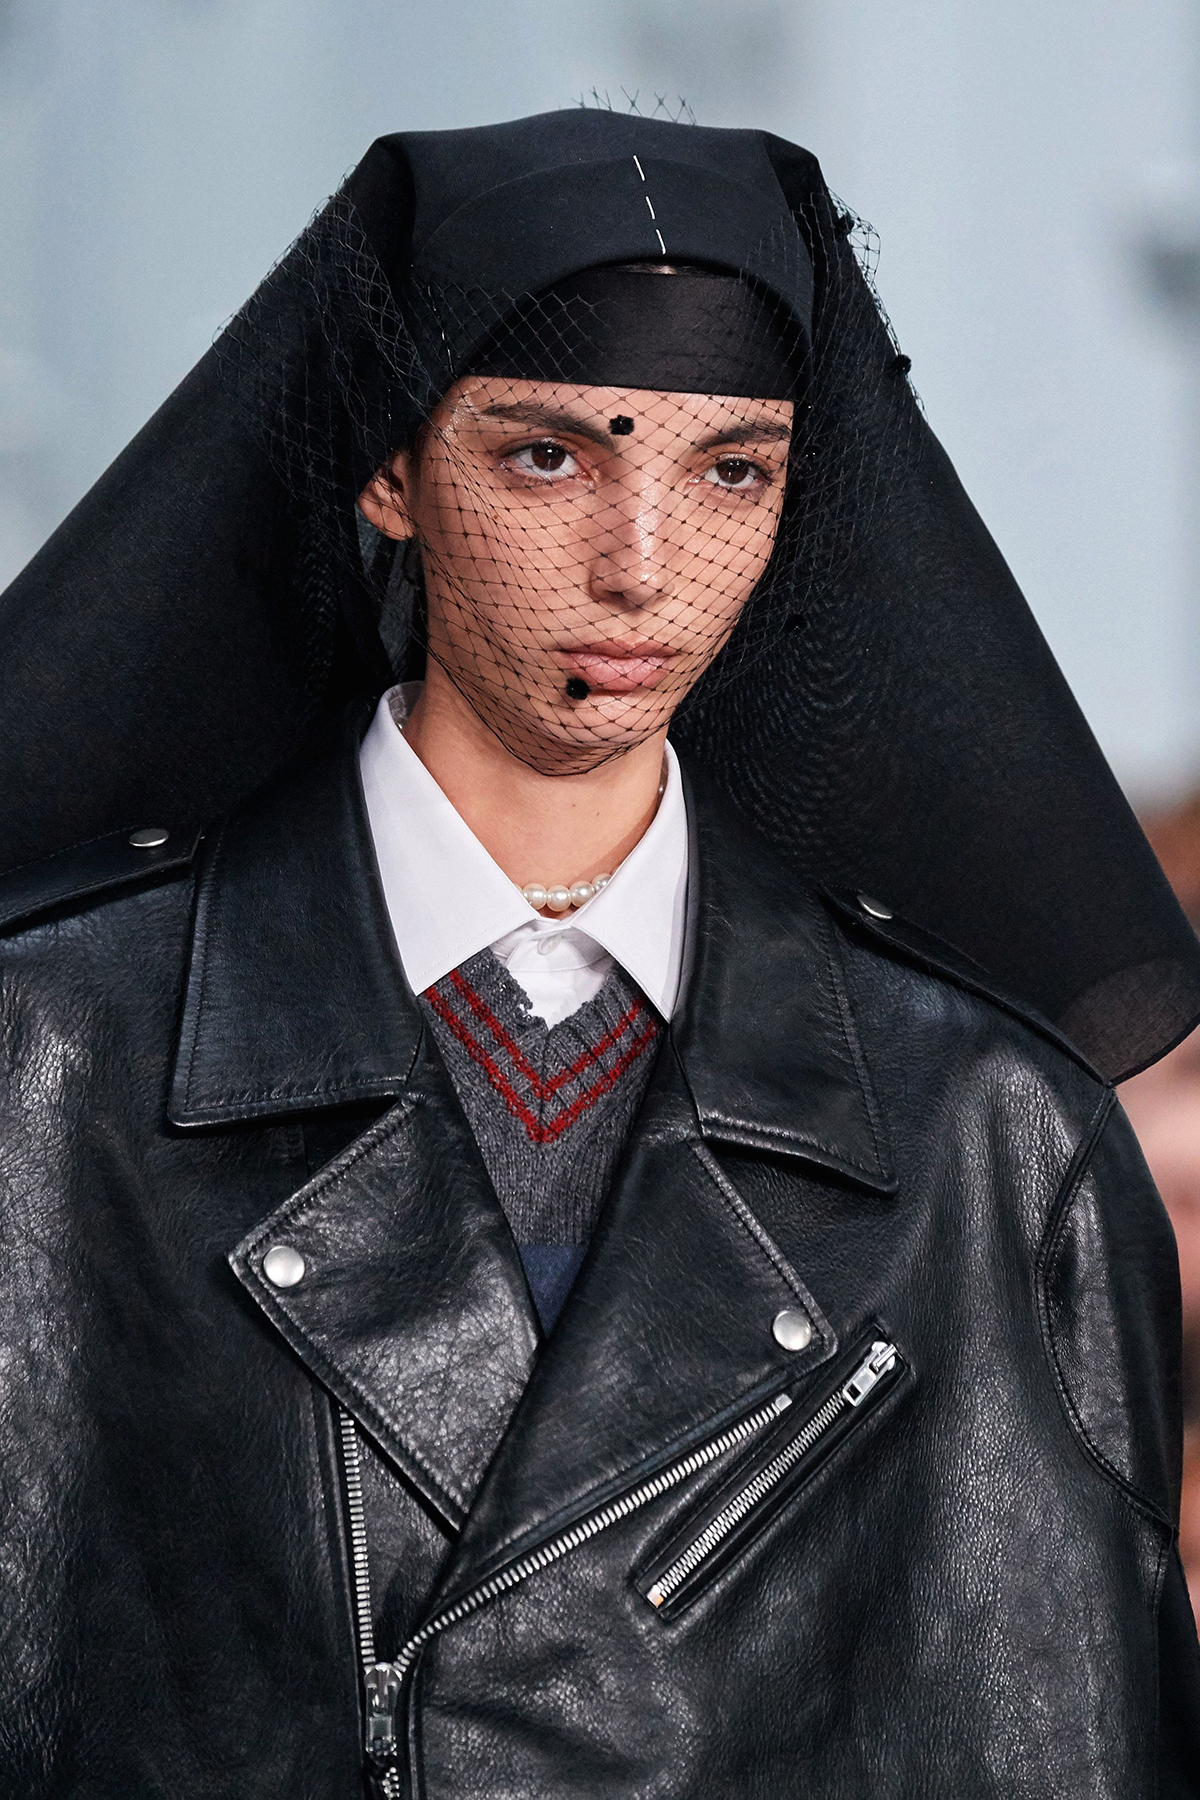 Maison Margiela Spring/Summer 2020 Ready-to-Wear